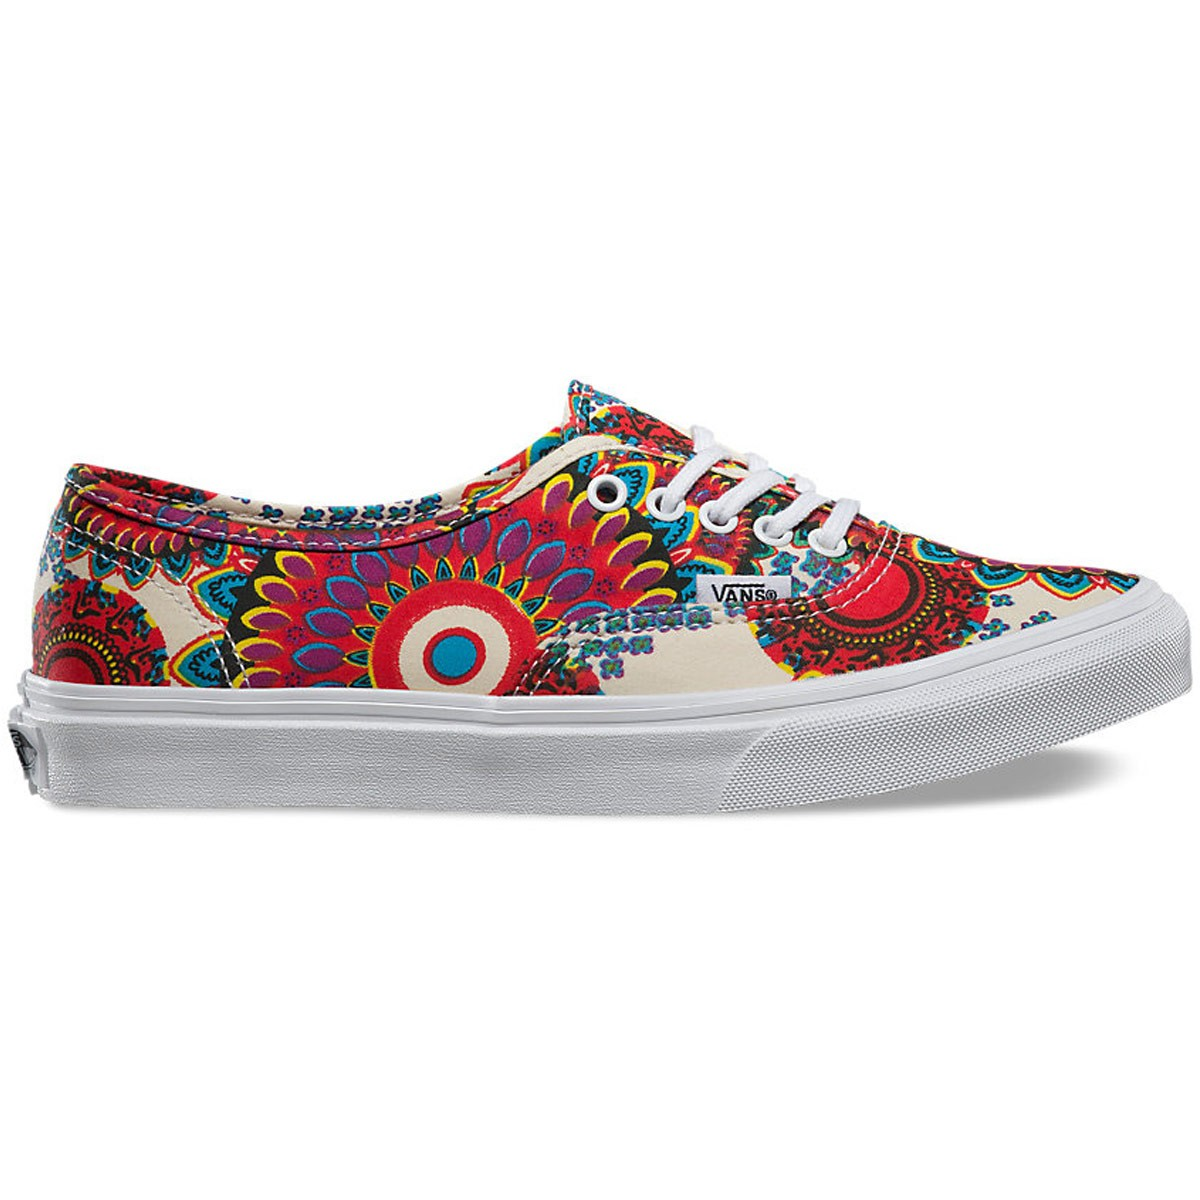 9a8487acff Vans Authentic Slim Geo Floral Shoes